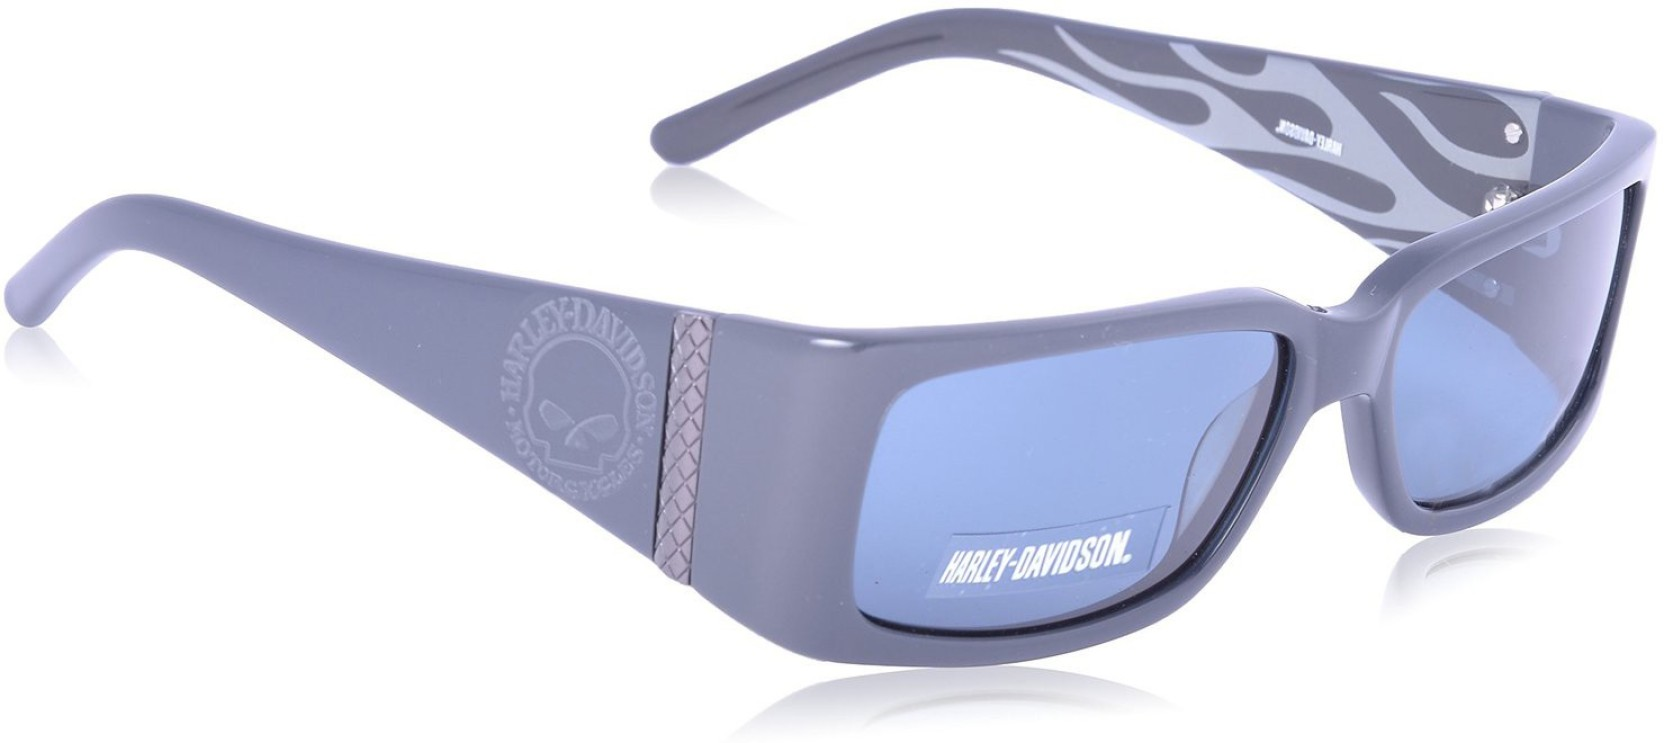 b49050058ef Buy Harley Davidson Rectangular Sunglasses Blue For Men Online ...